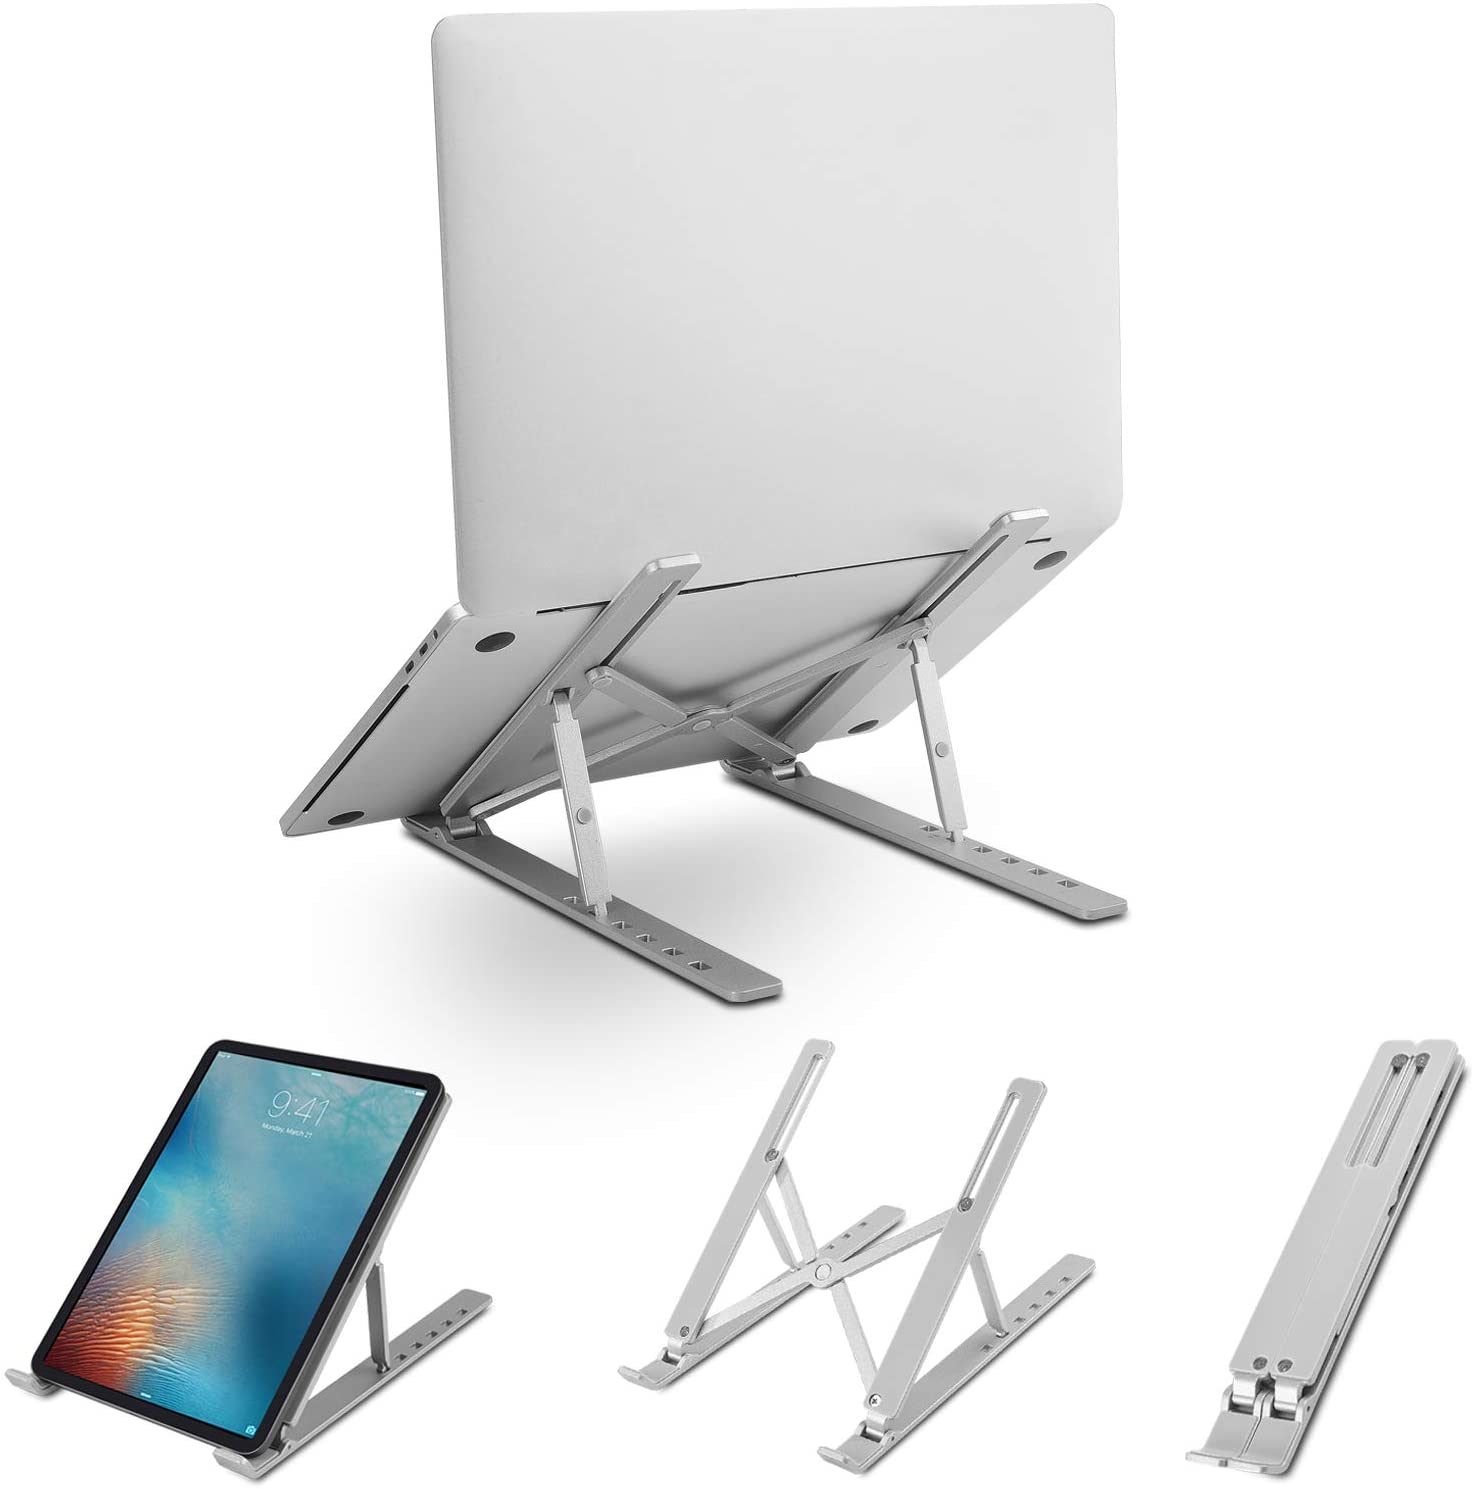 xisiciao Portable Foldable Aluminum Laptop Stand Holder, Adjustable Laptop Cradle for Desk,Compatible with MacBook Air, MacBook Pro, Microsoft Surface,HP, Dell, Lenovo More (Up to 17 inch),